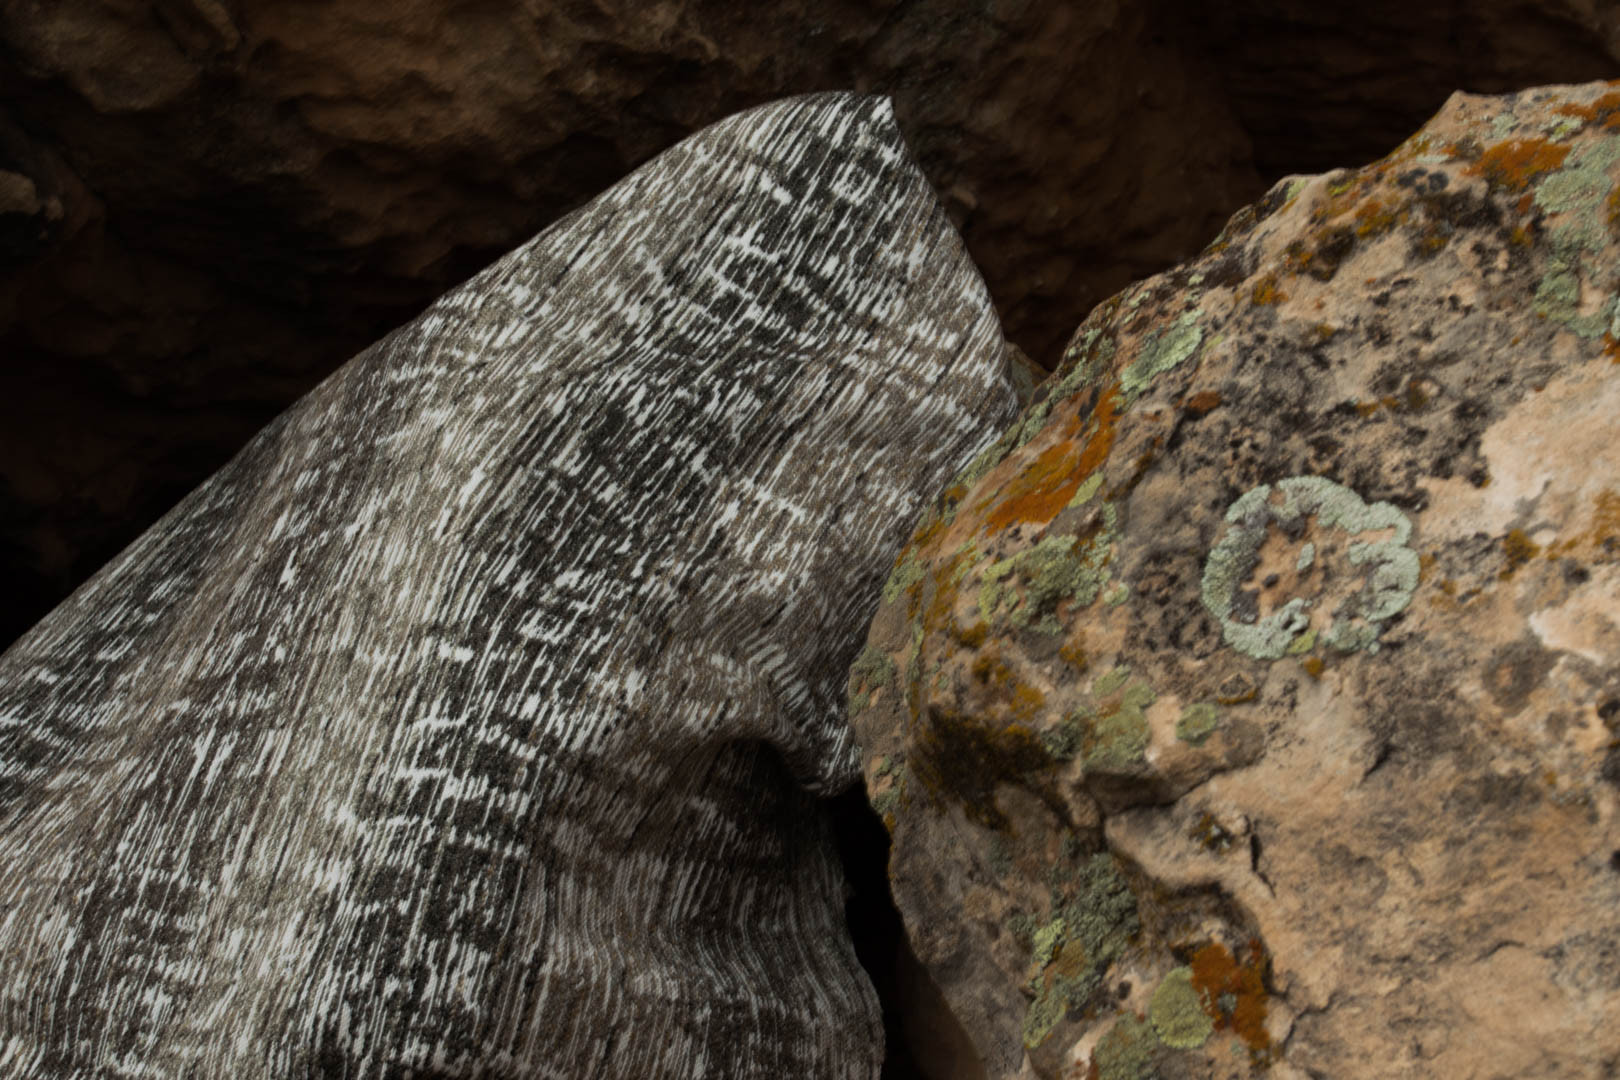 fabric and rock1.jpg